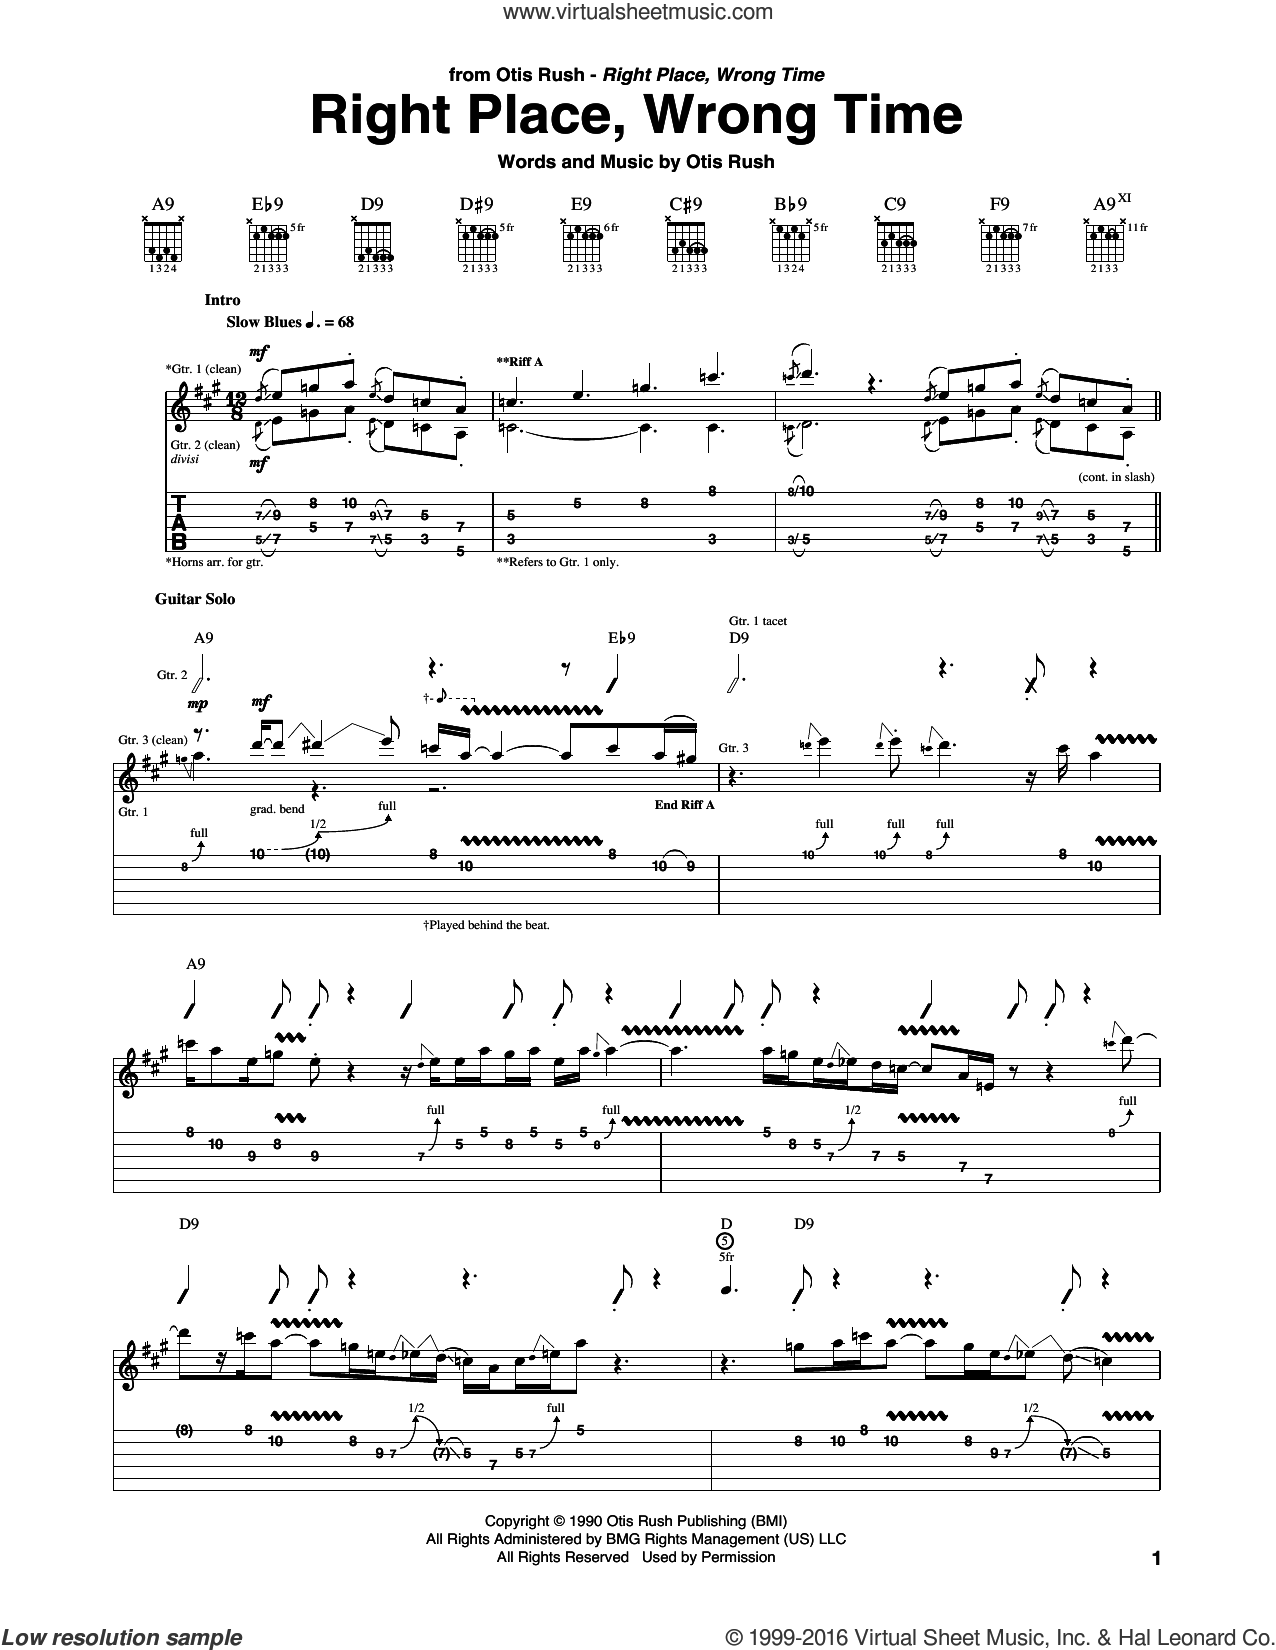 Right Place, Wrong Time sheet music for guitar (tablature) by Otis Rush